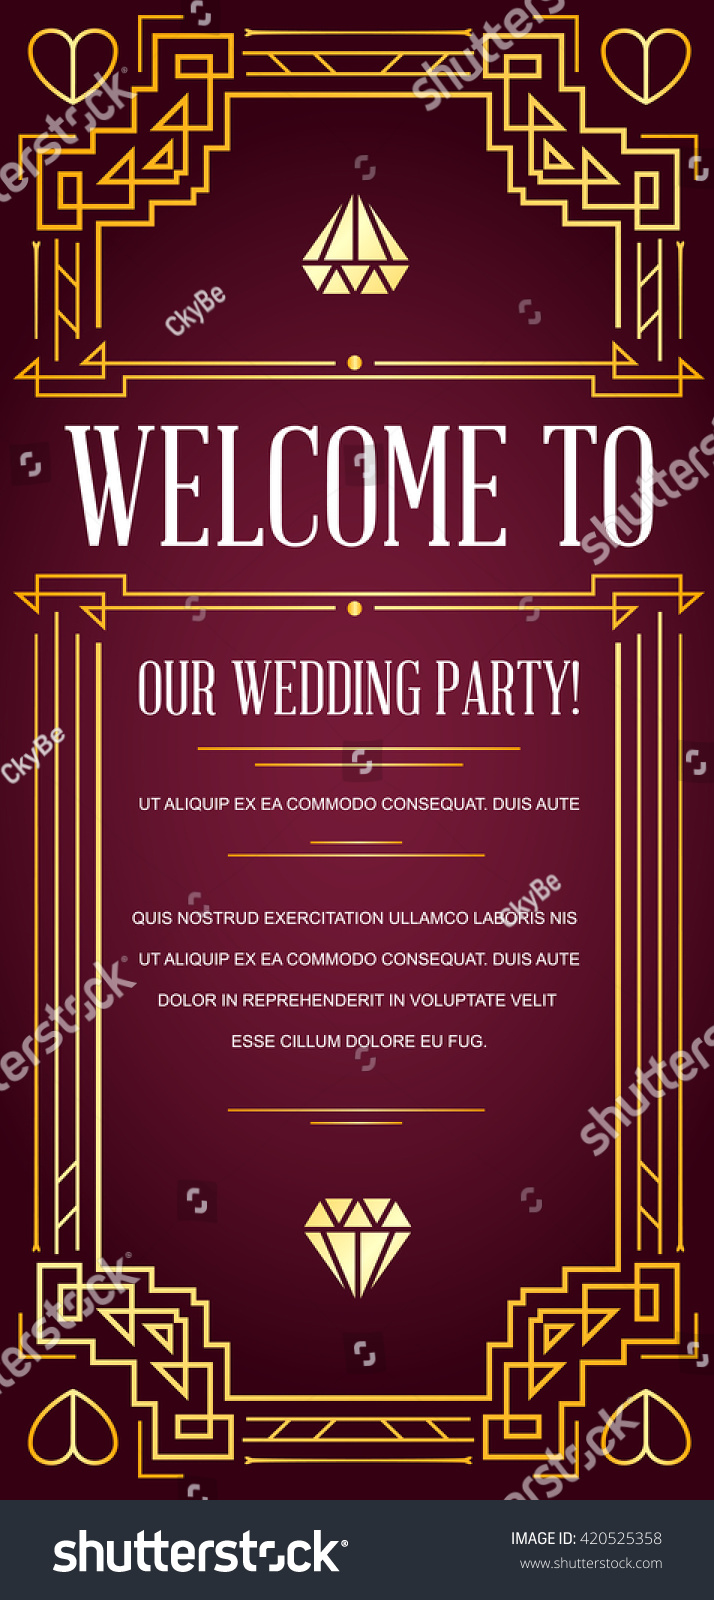 Great Quality Style Invitation Art Deco Stock Vector (Royalty Free ...